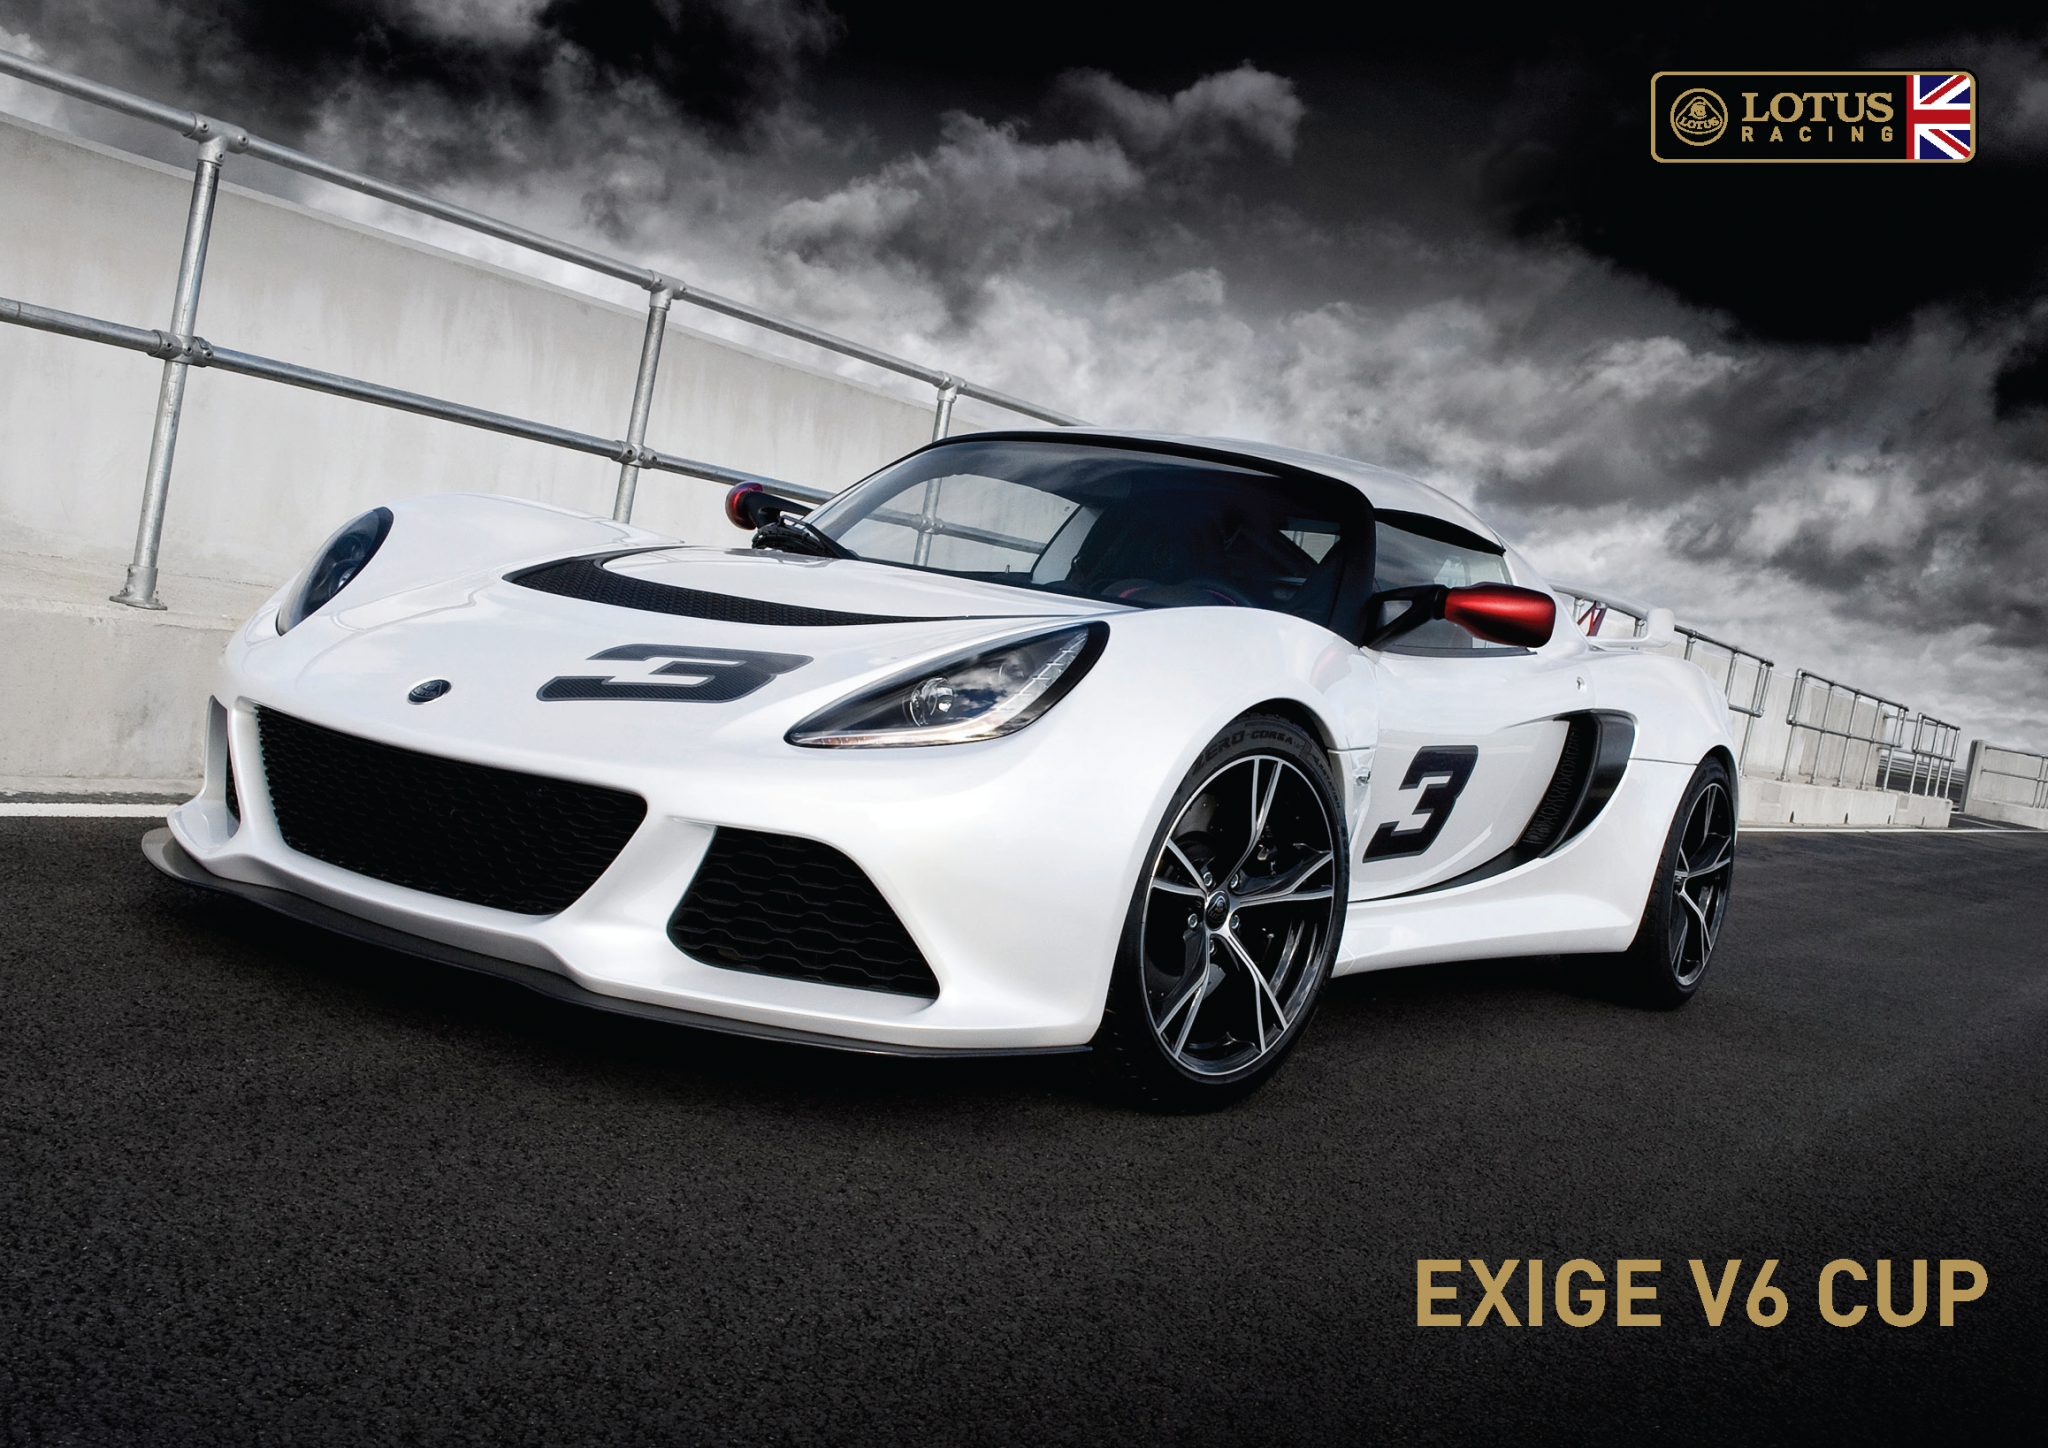 lotus racing exige v6 cup specifications seloc. Black Bedroom Furniture Sets. Home Design Ideas